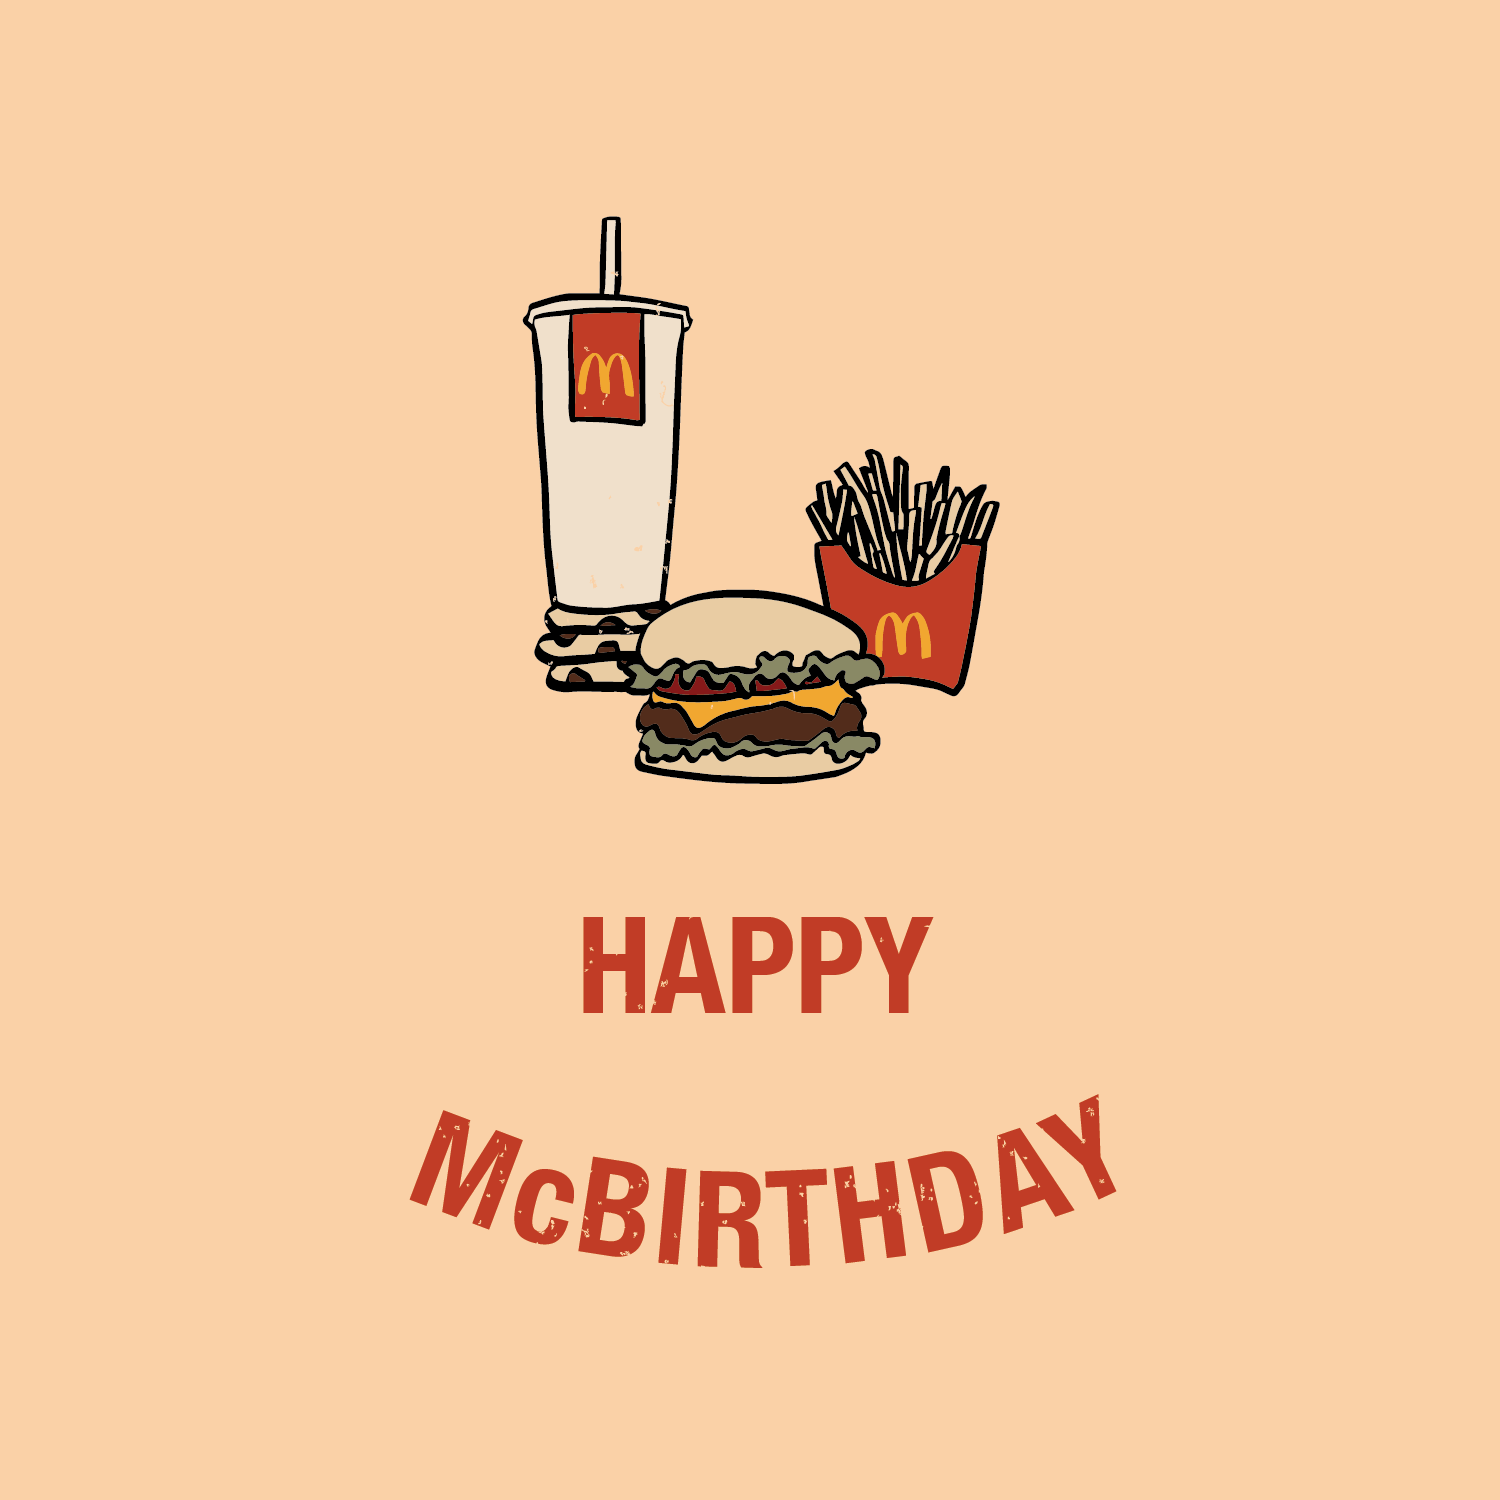 Happy McBirthday-01.png